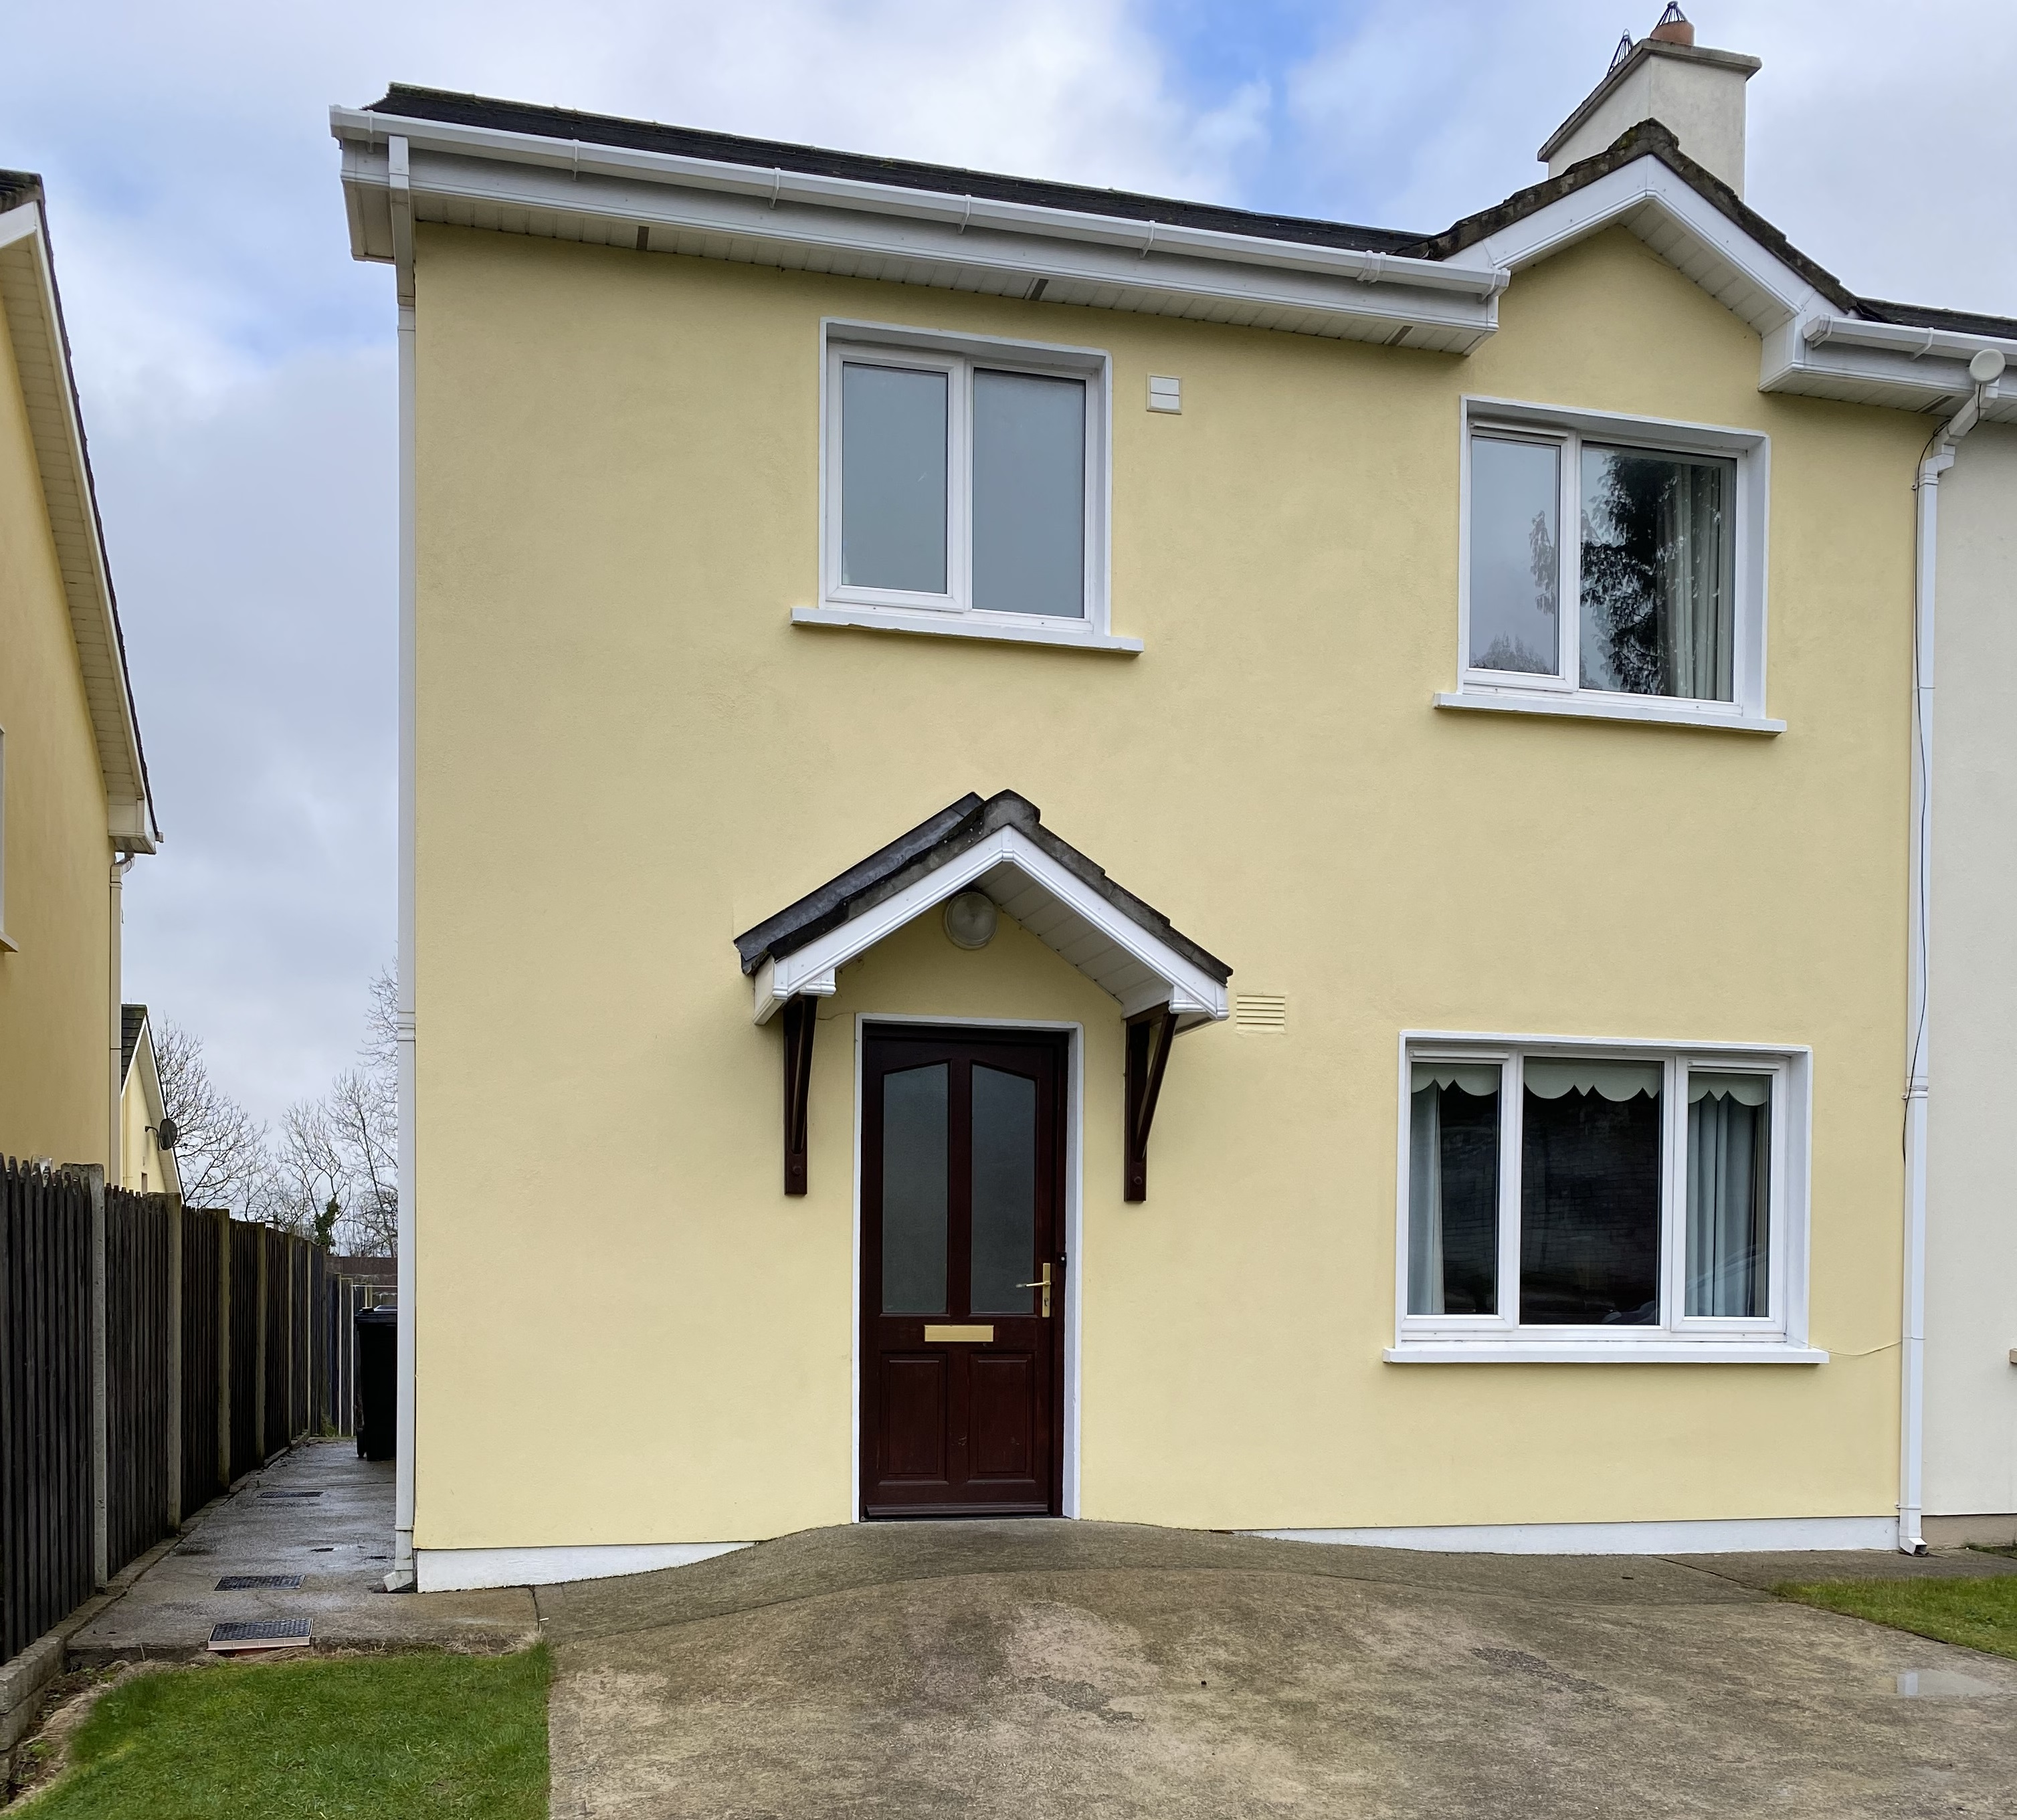 3 Bedroom semi-detached Cois Cille, Conna